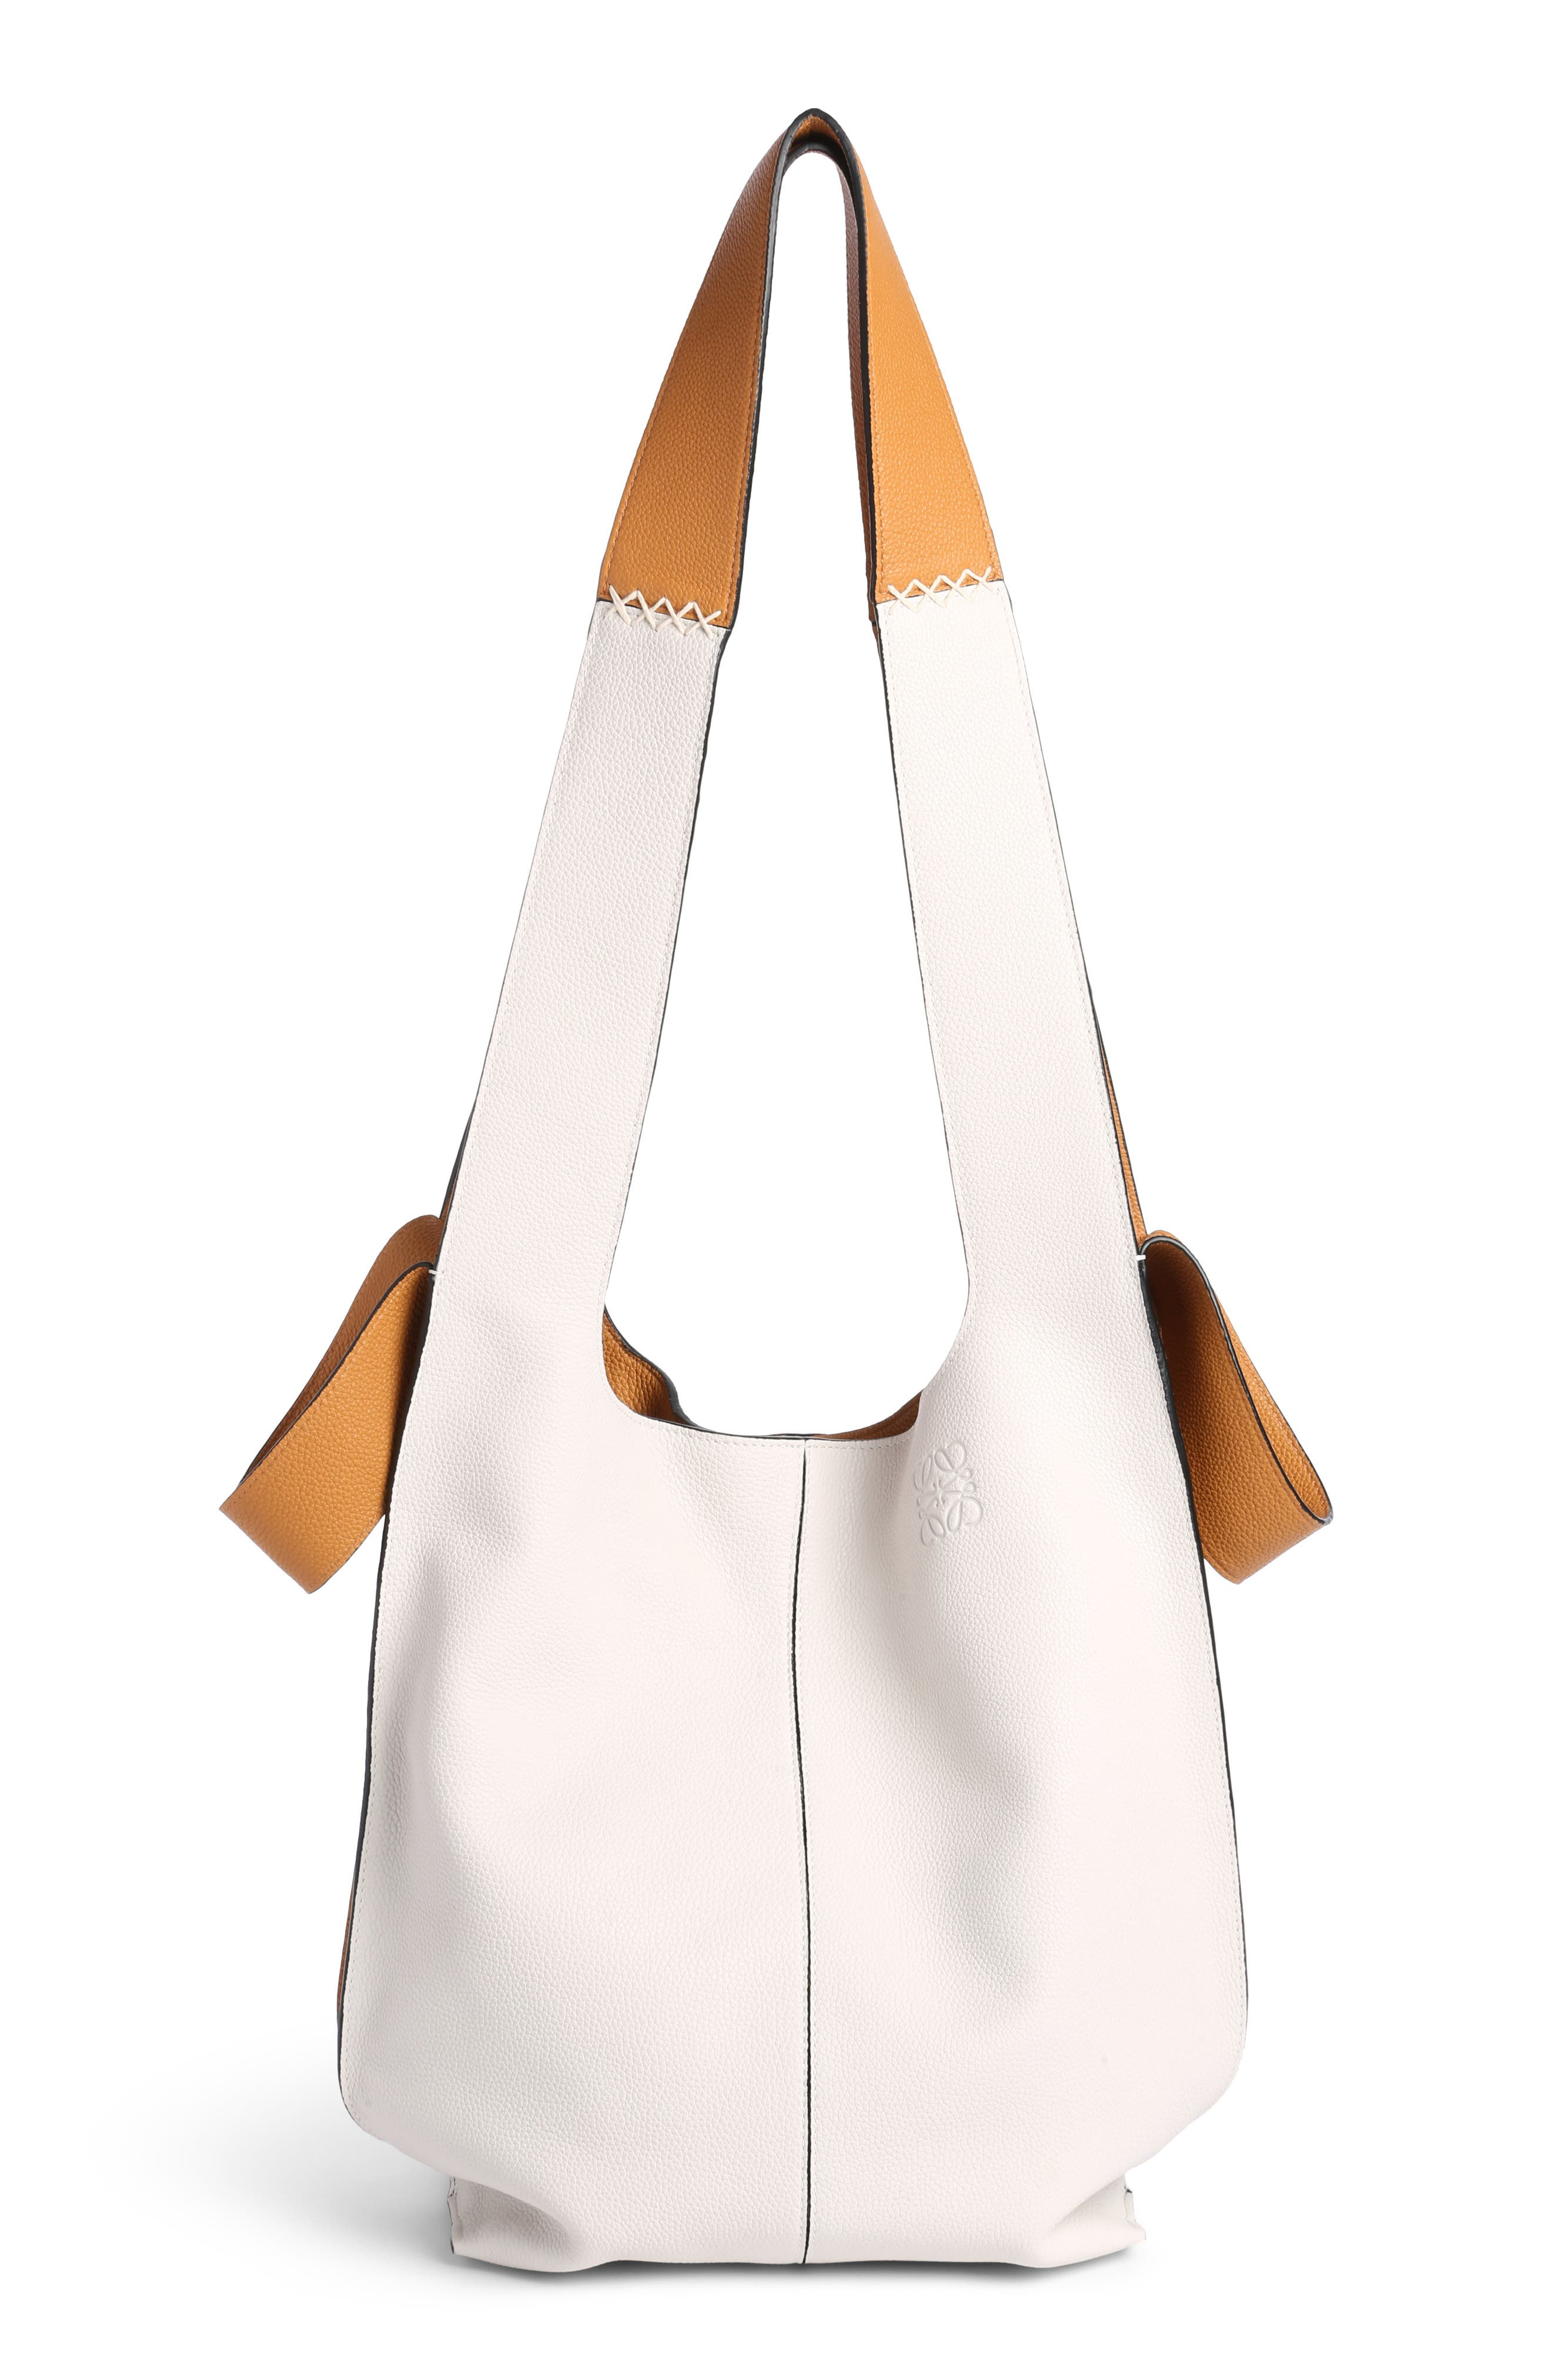 Leather Hobo Tote Bag,                         Main,                         color, 141